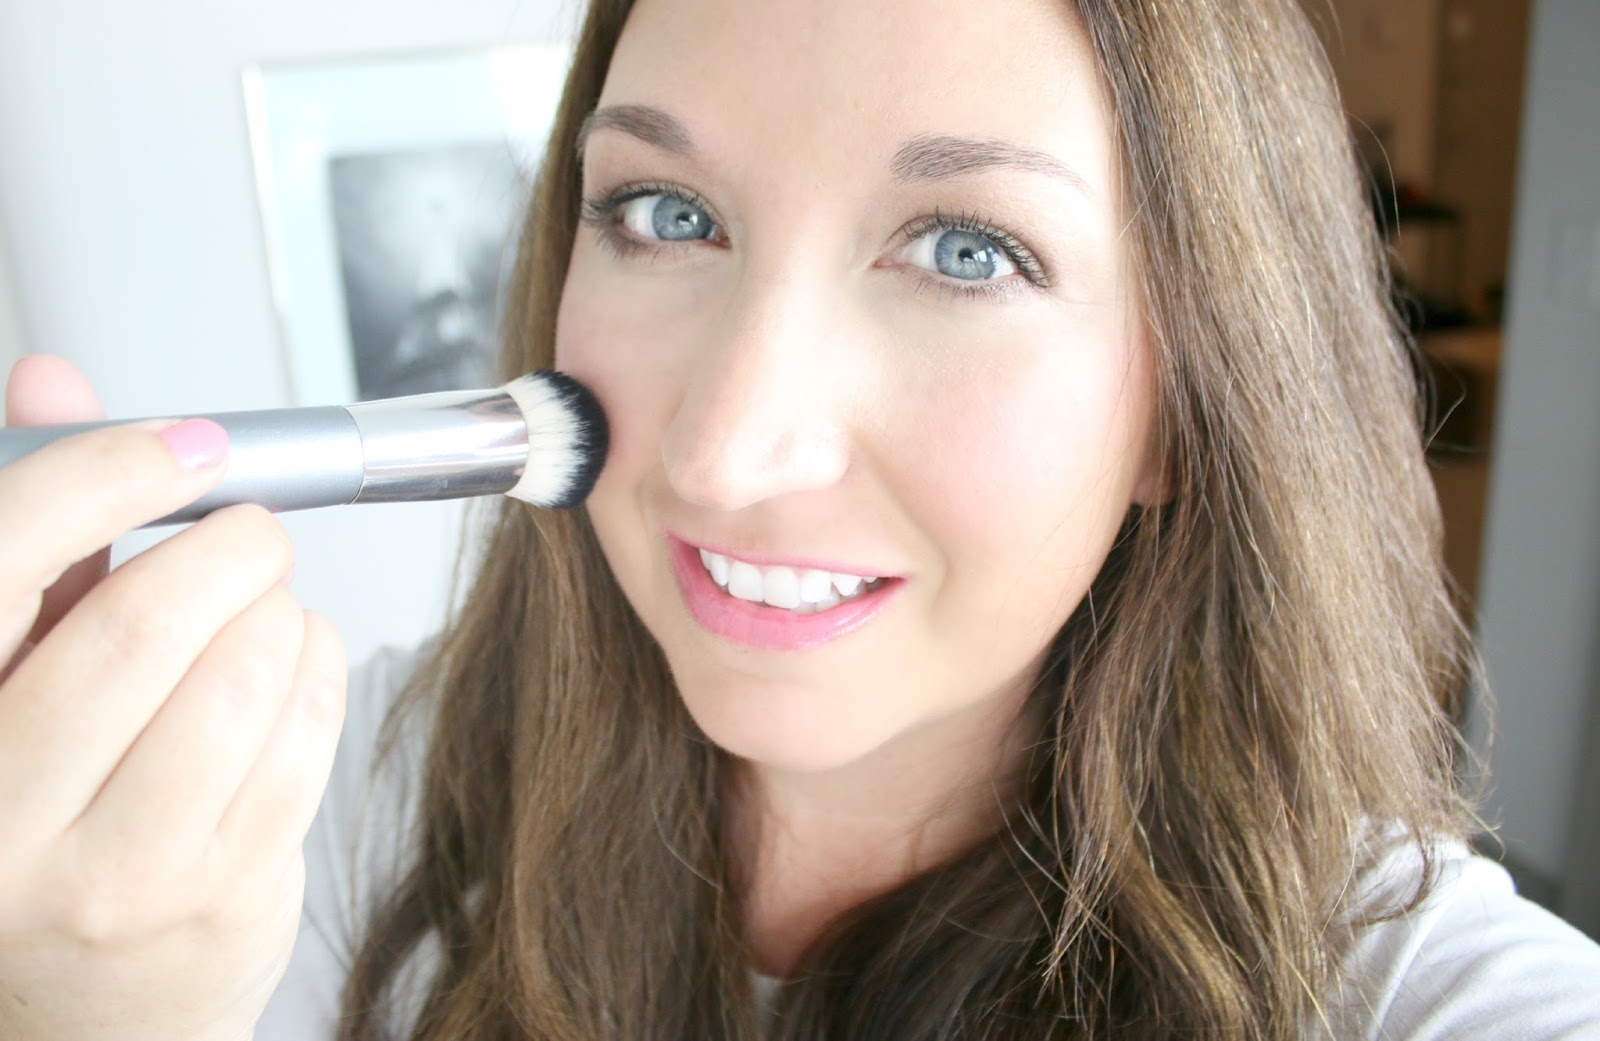 How To: Naturallooking Full Coverage Makeup In 5 Minutes How To:  Naturallooking Full Coverage